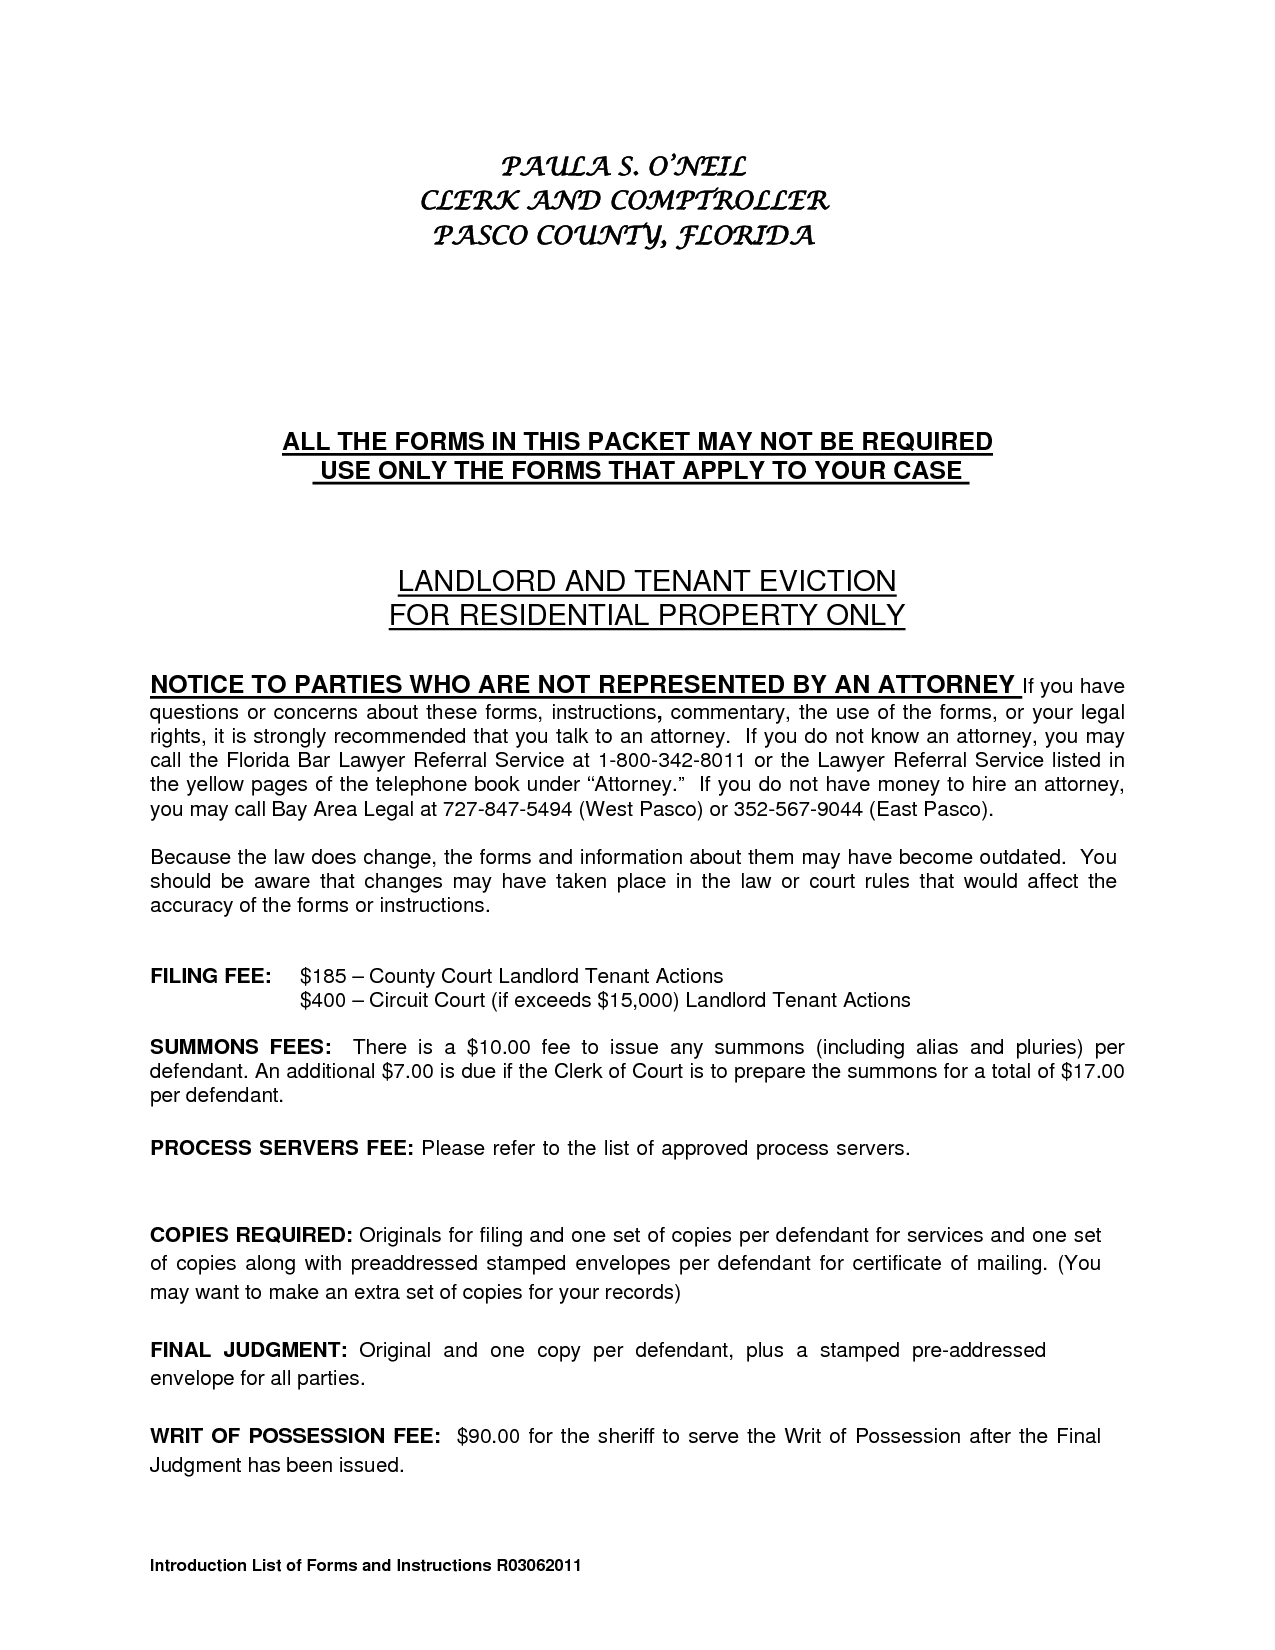 Month to Month Lease Termination Letter Template - Residential Landlord Tenant Eviction Notice form by Ere